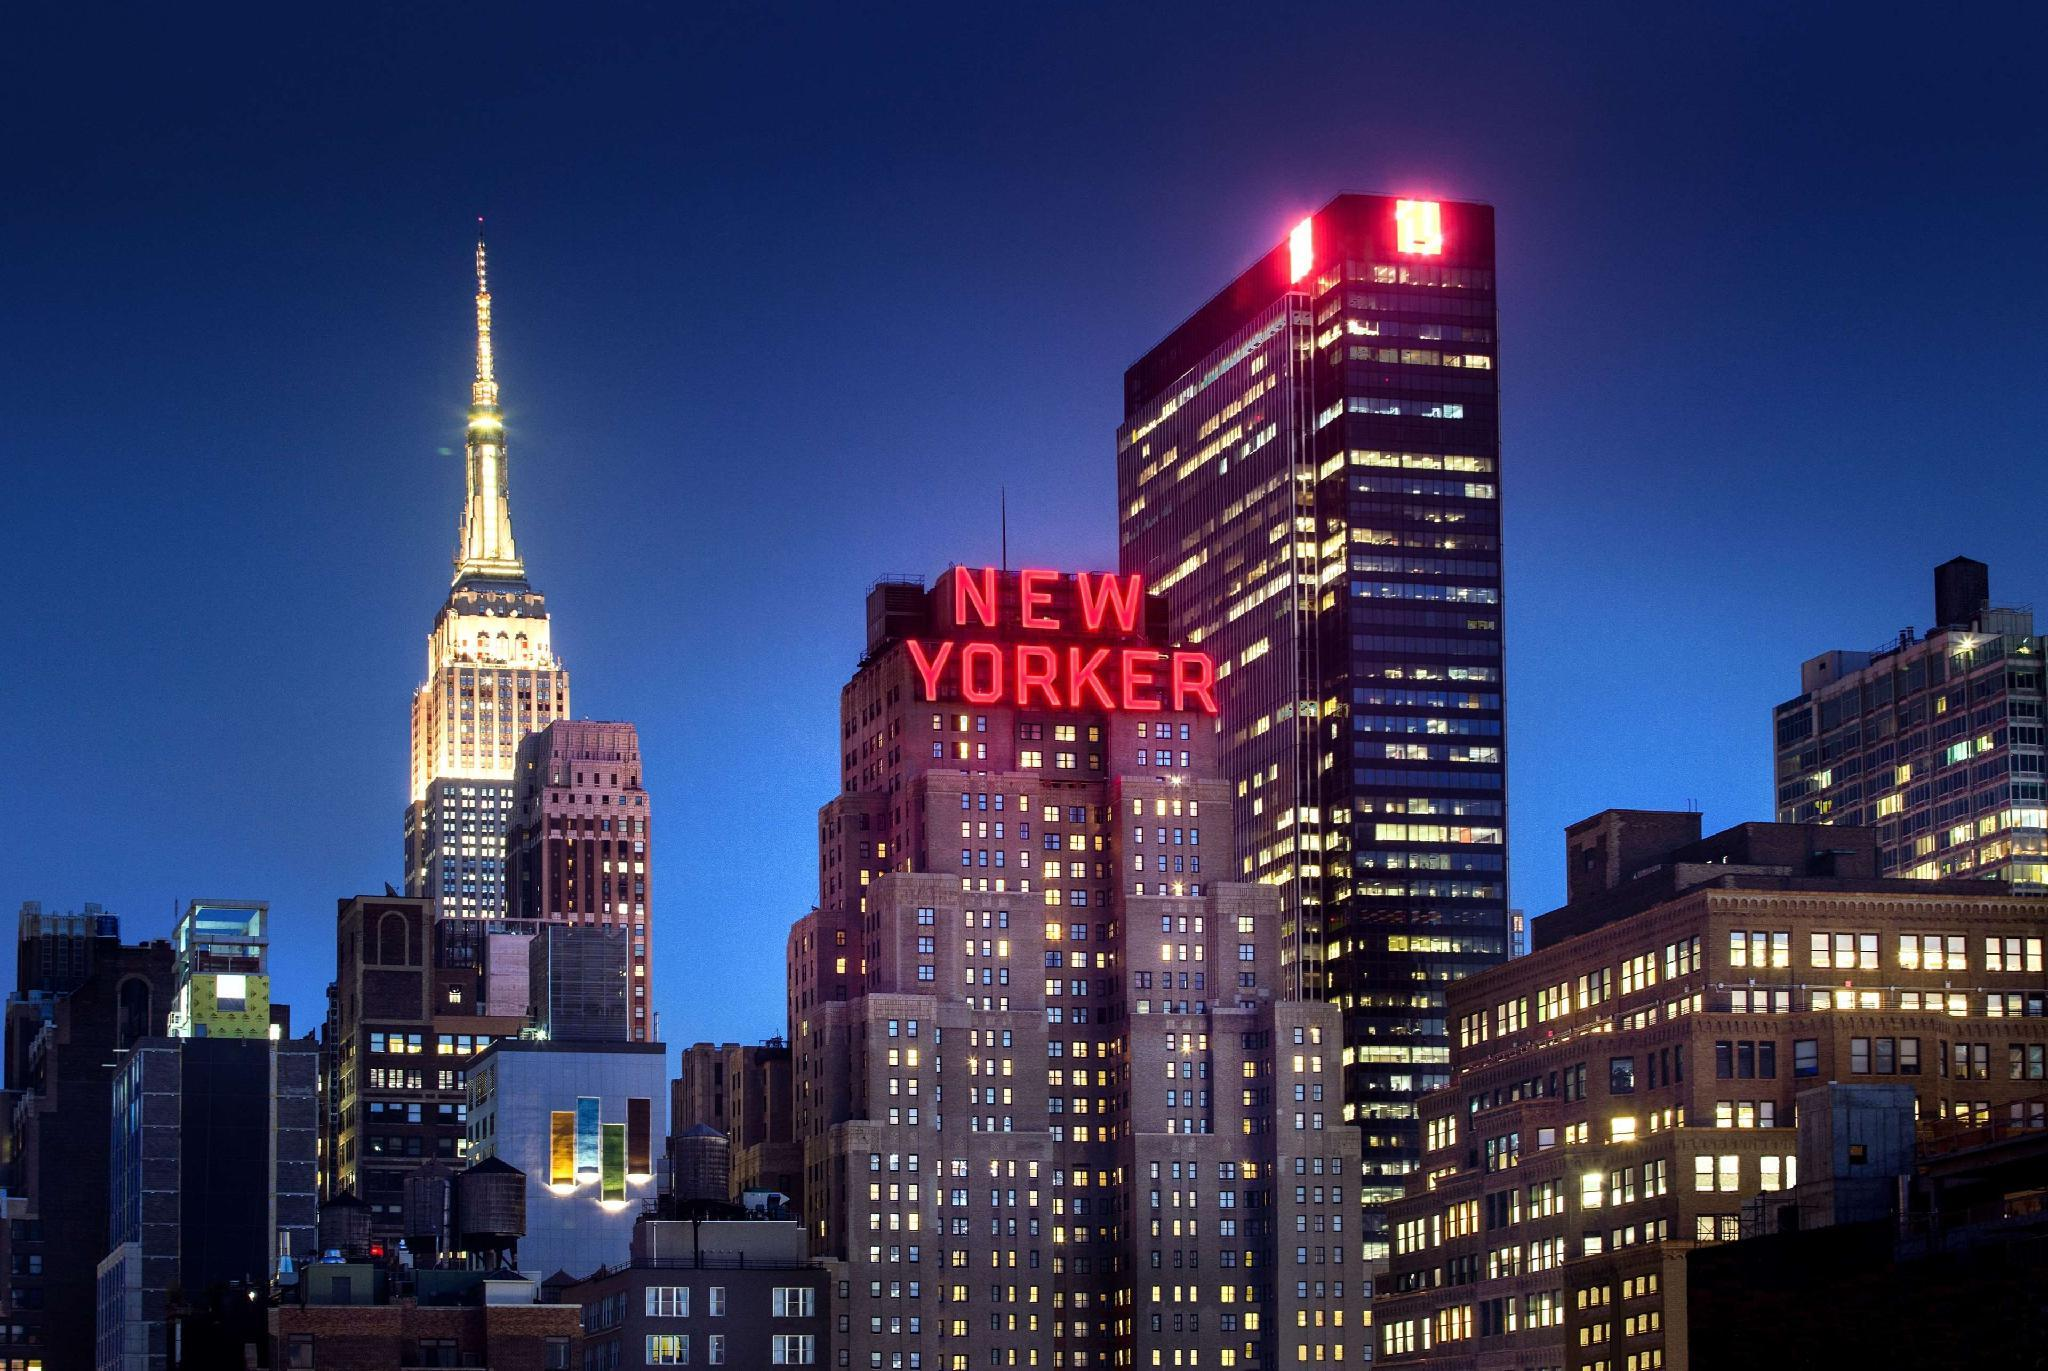 The New Yorker, A Wyndham Hotel image